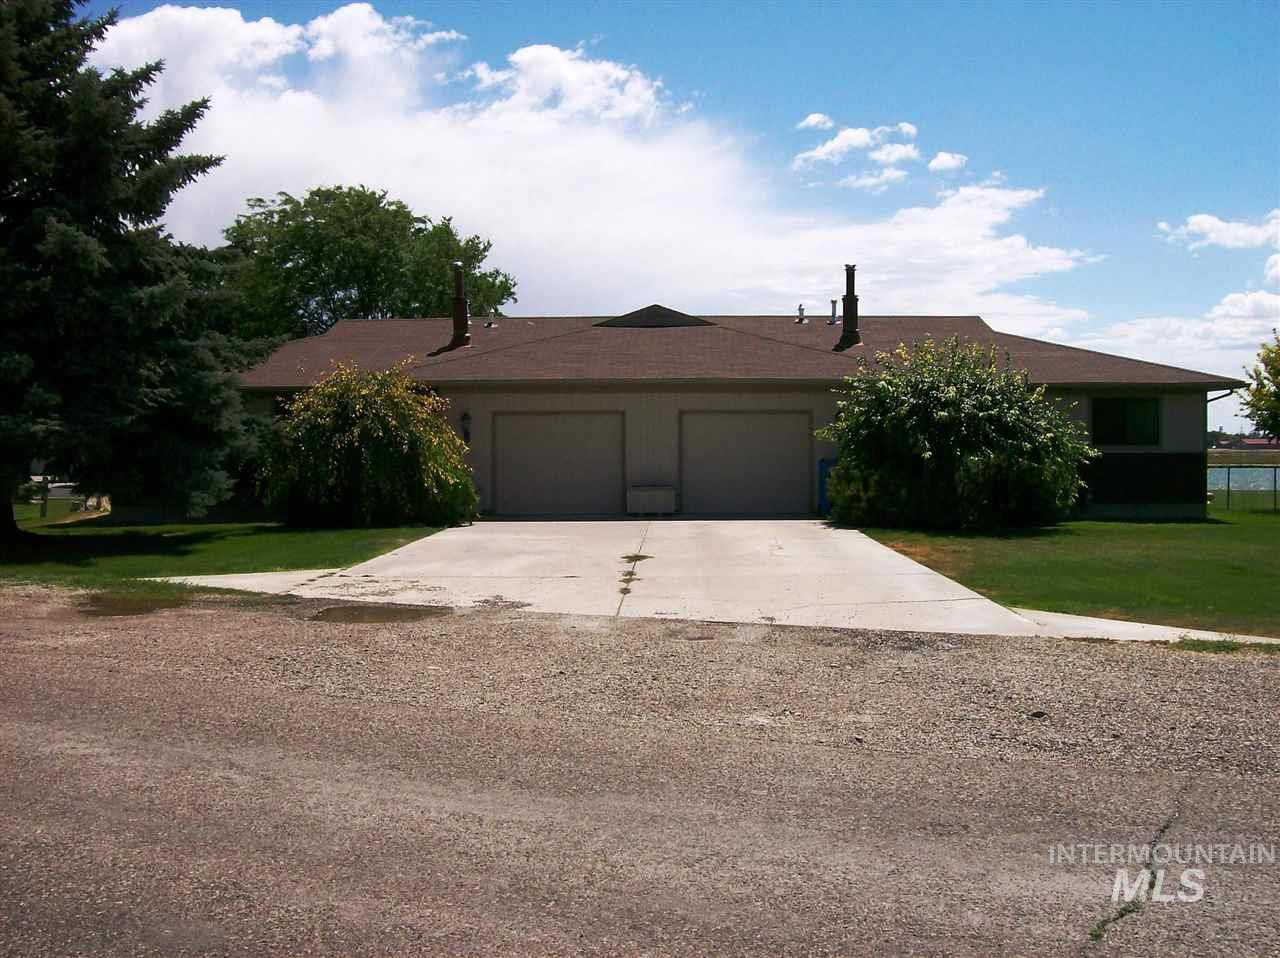 Duplex for Sale at 2343 River Road 2343 River Road Heyburn, Idaho 83336